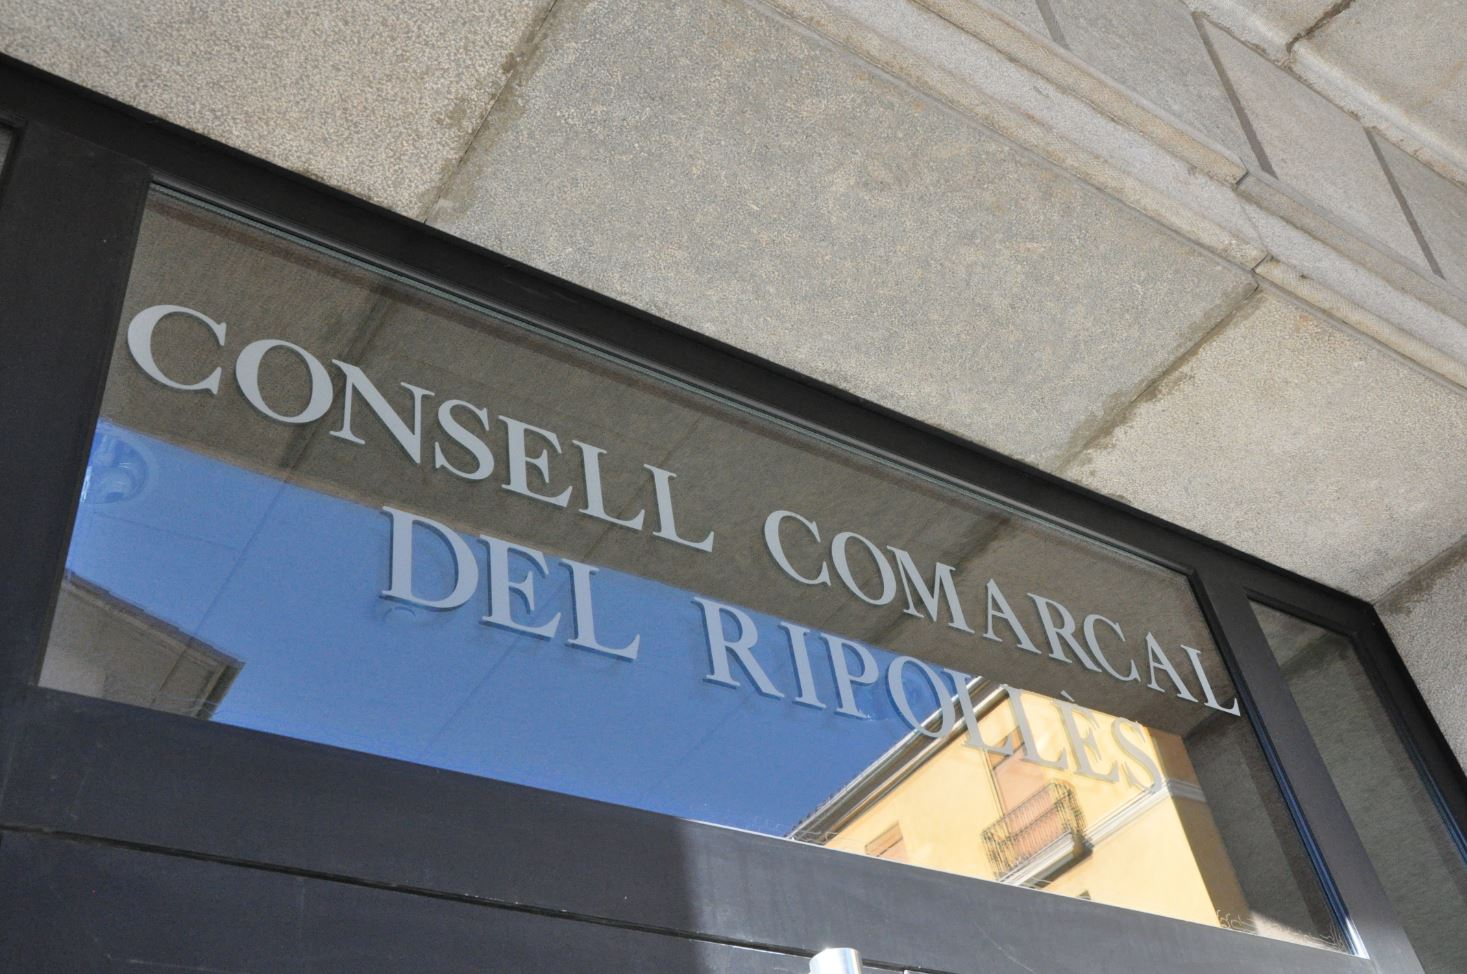 consell comarcal del ripollès